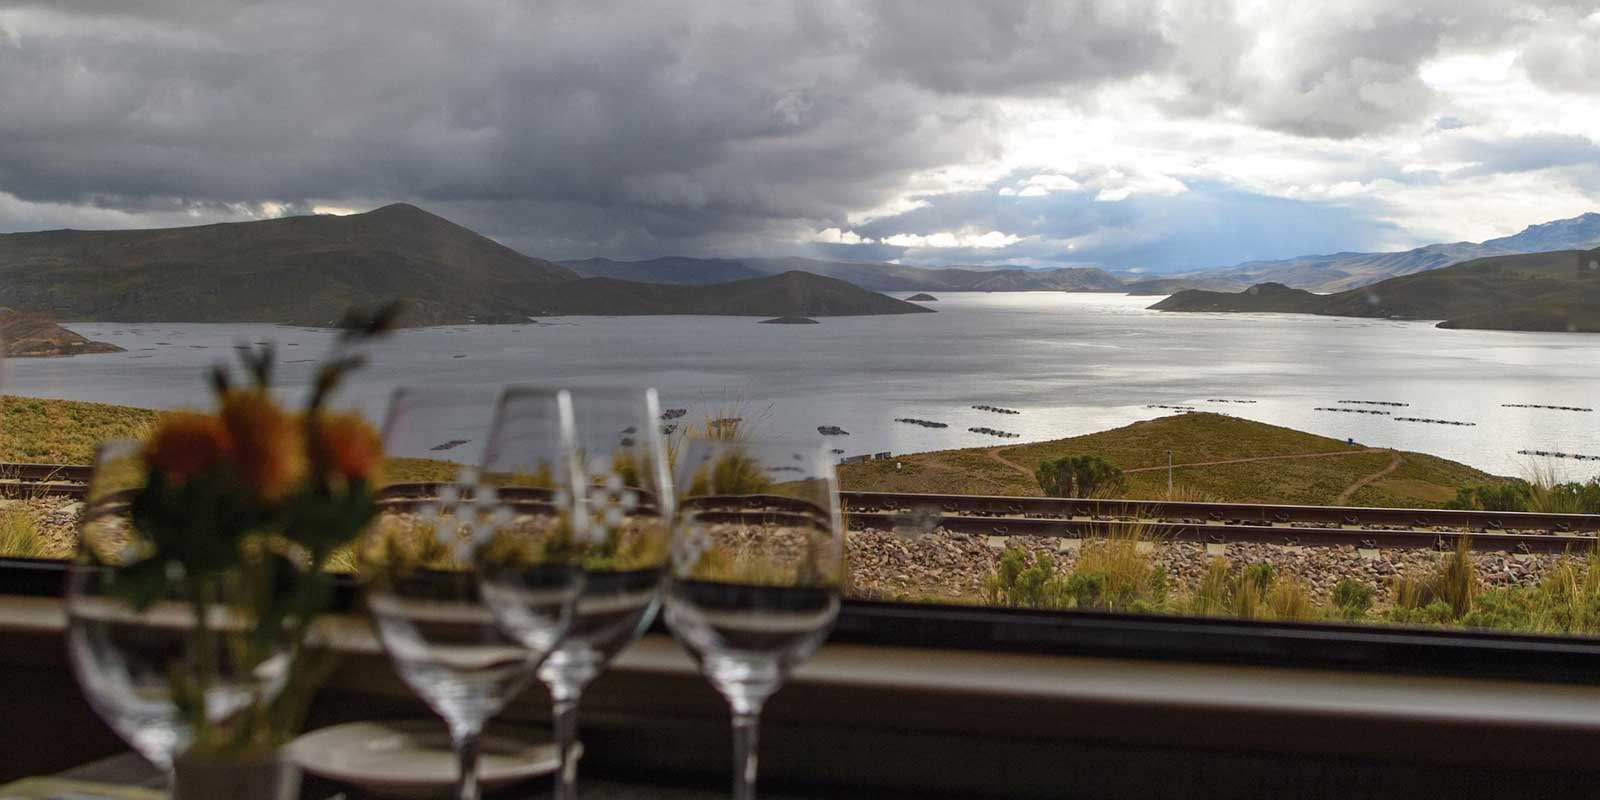 Dining aboard the Belmond Andean Explorer